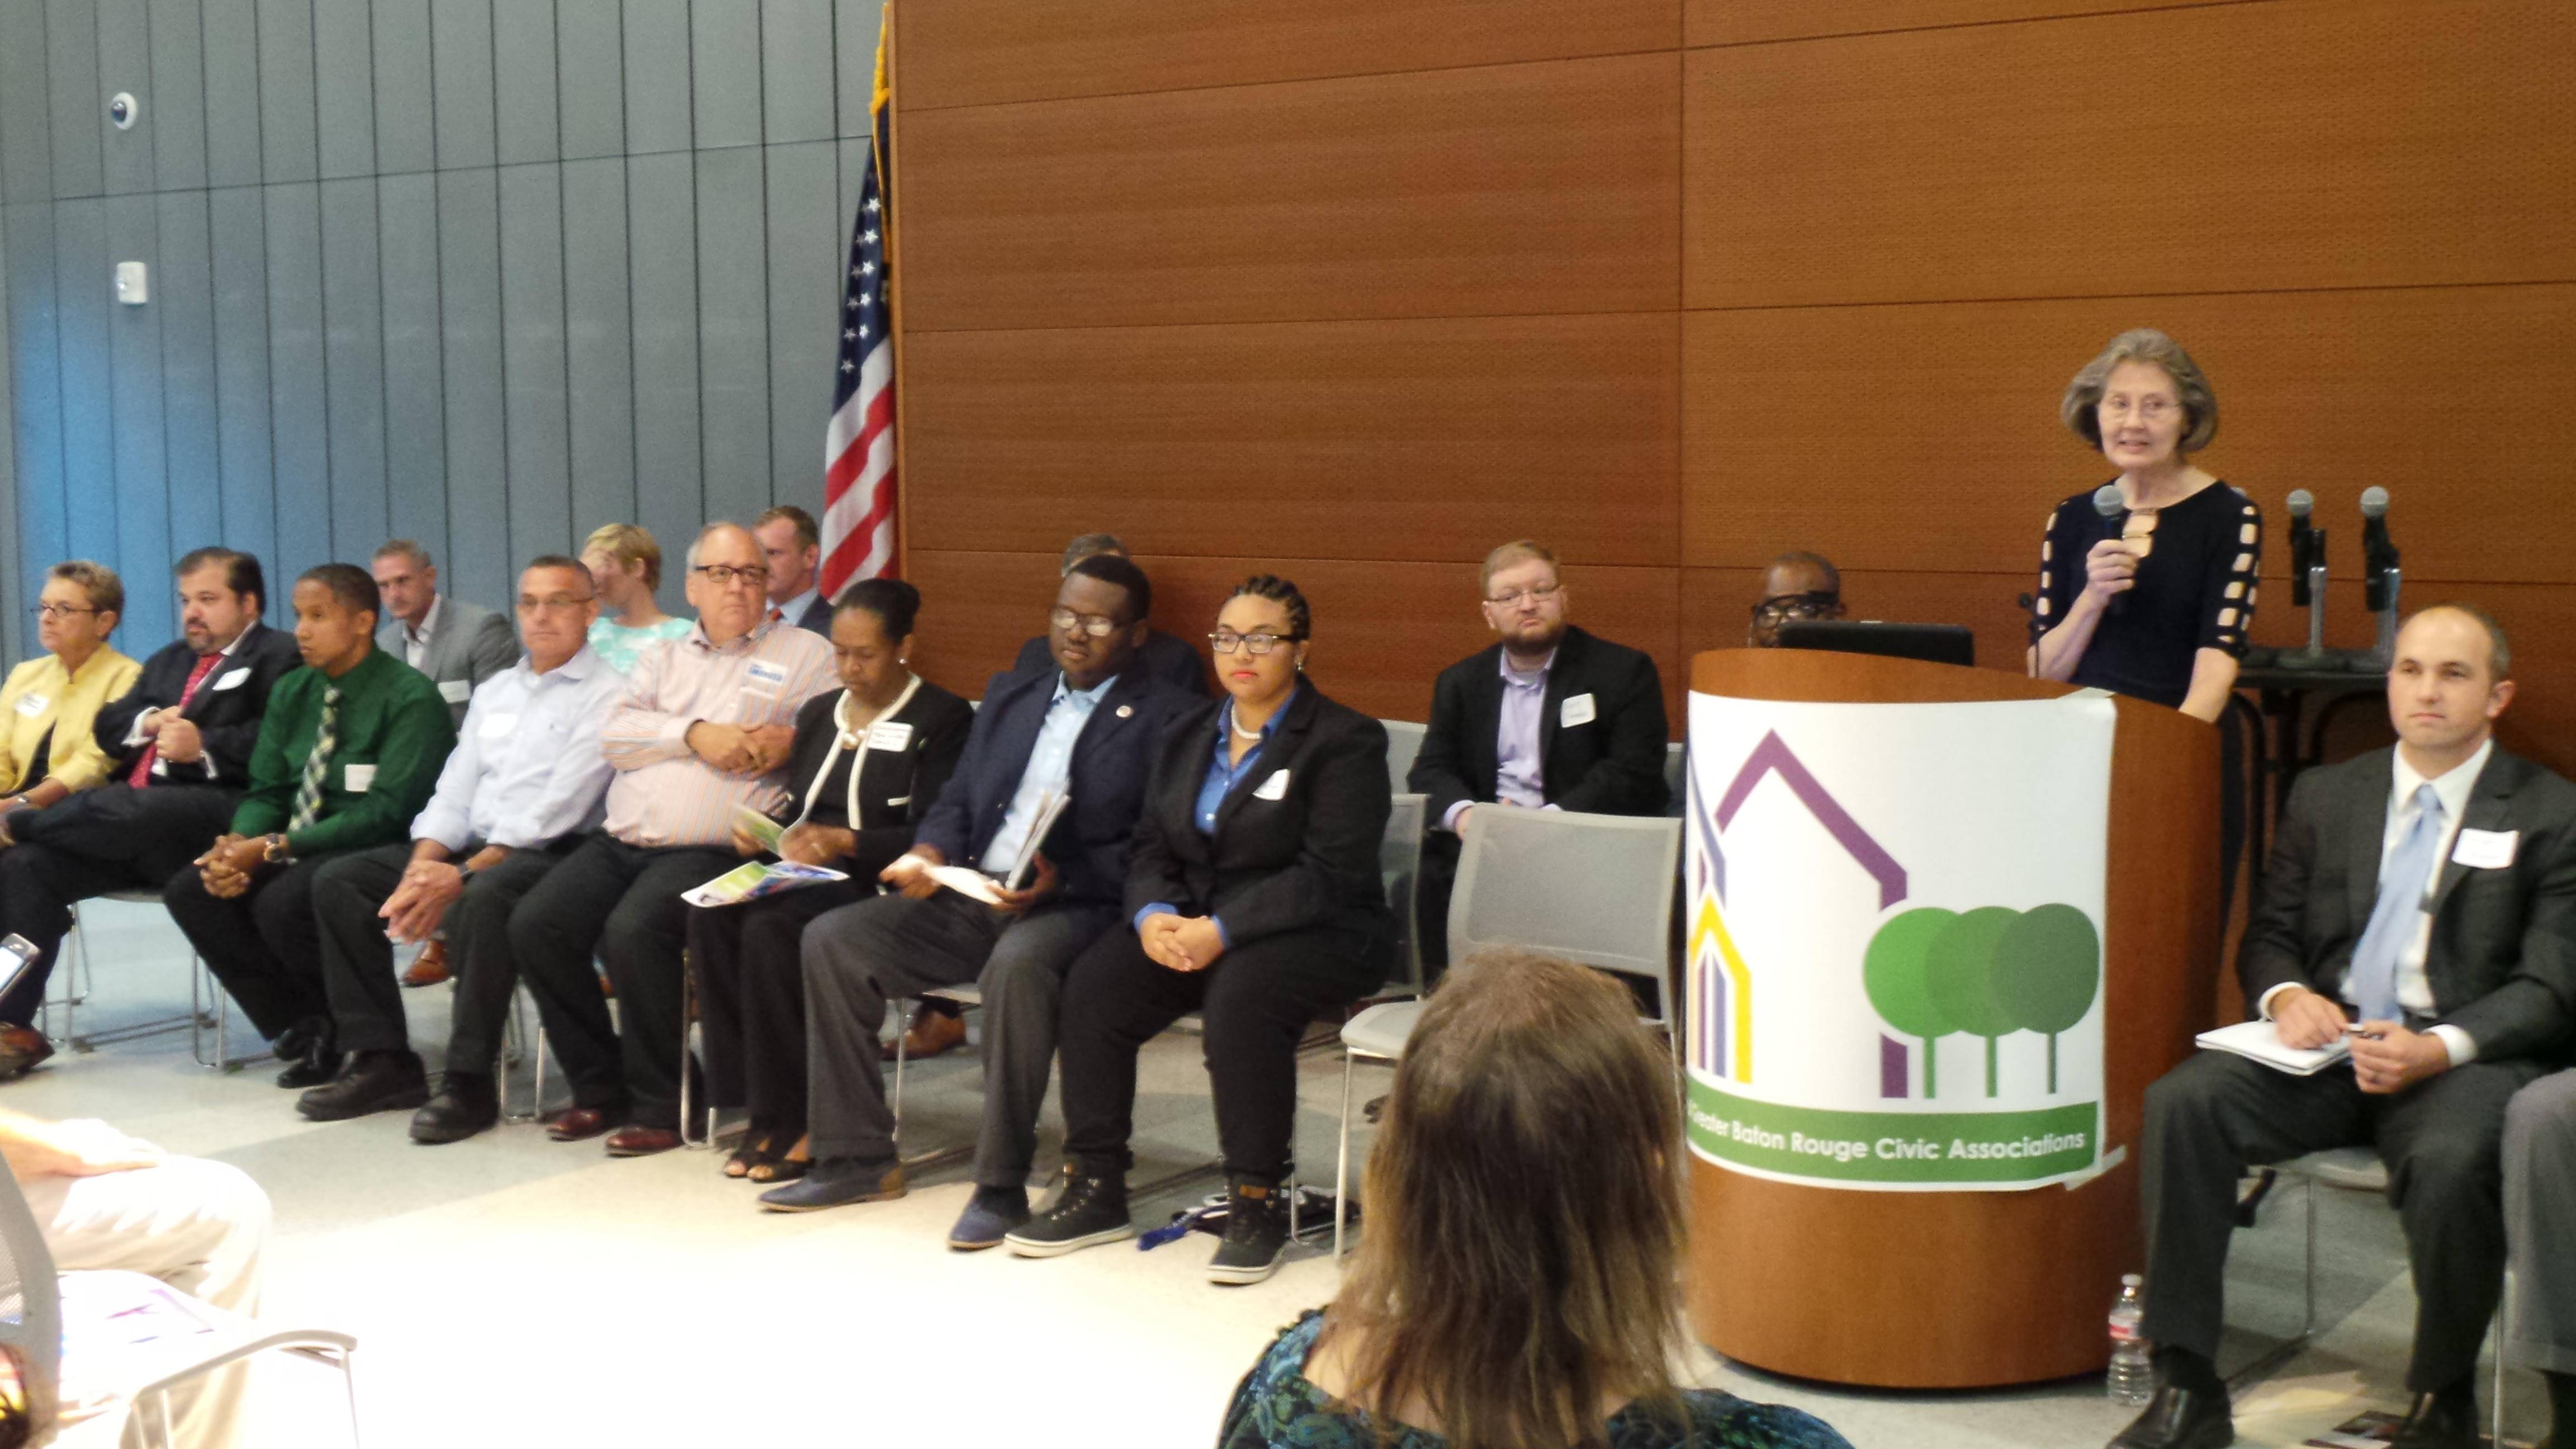 Forum for Metro Council Candidates Meeting September 8, 2016